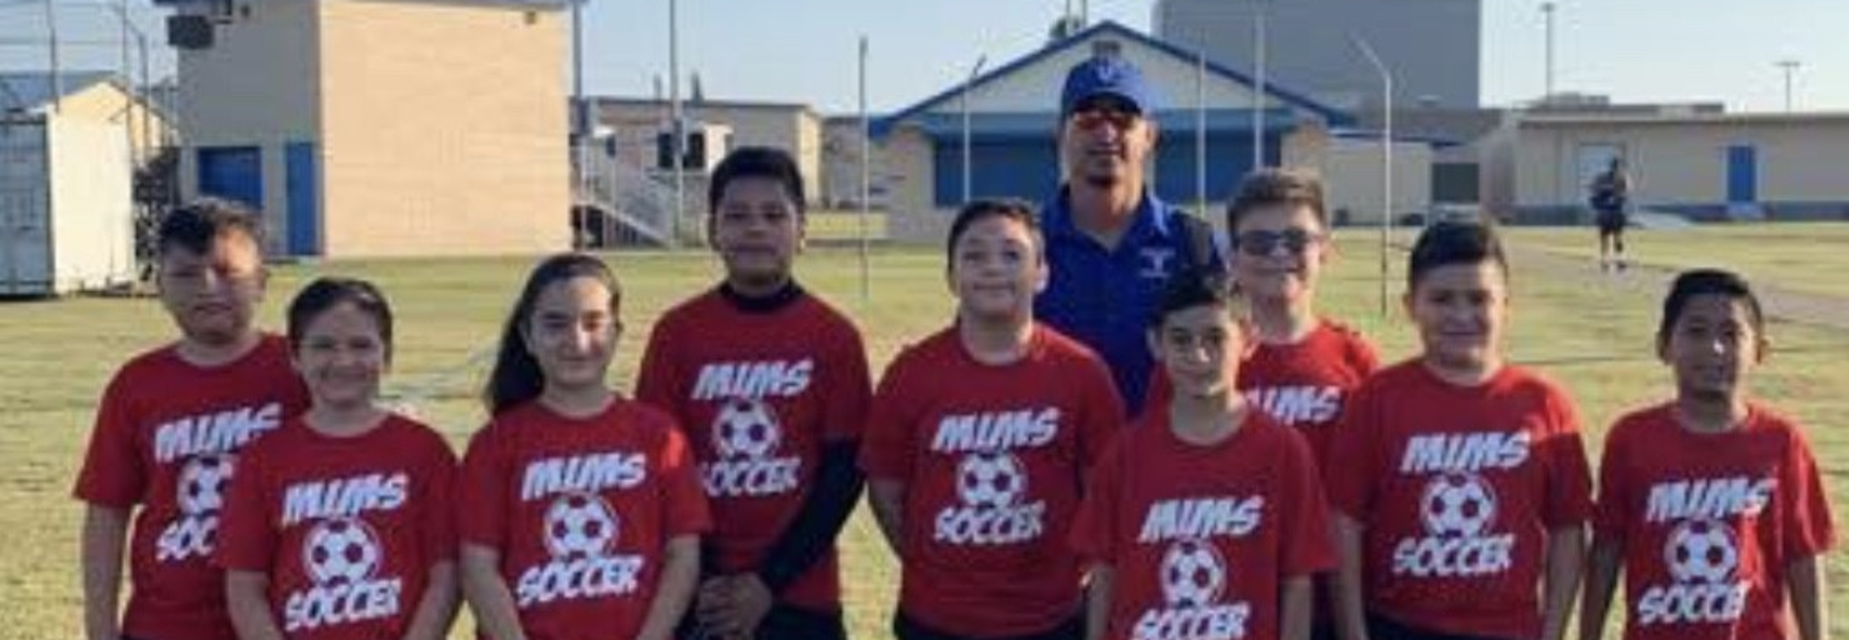 kids and coach wearing soccer shirts